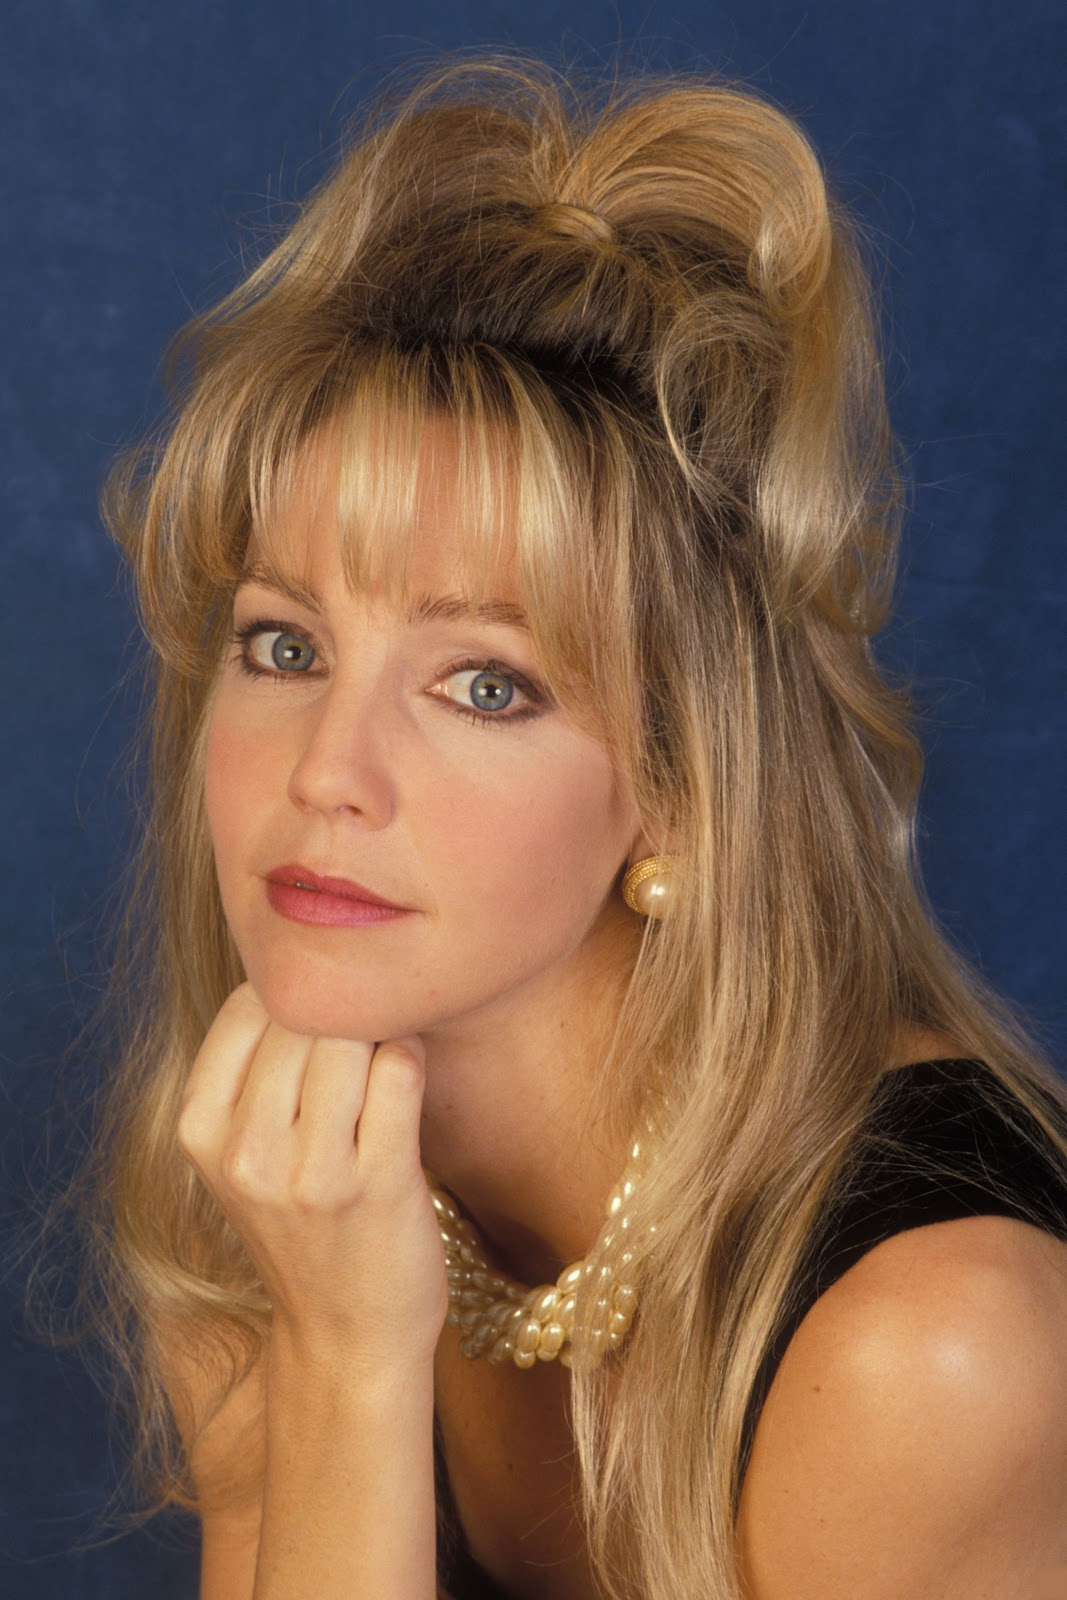 Young Celebrity Photo Gallery: Heather Locklear As Young Girl